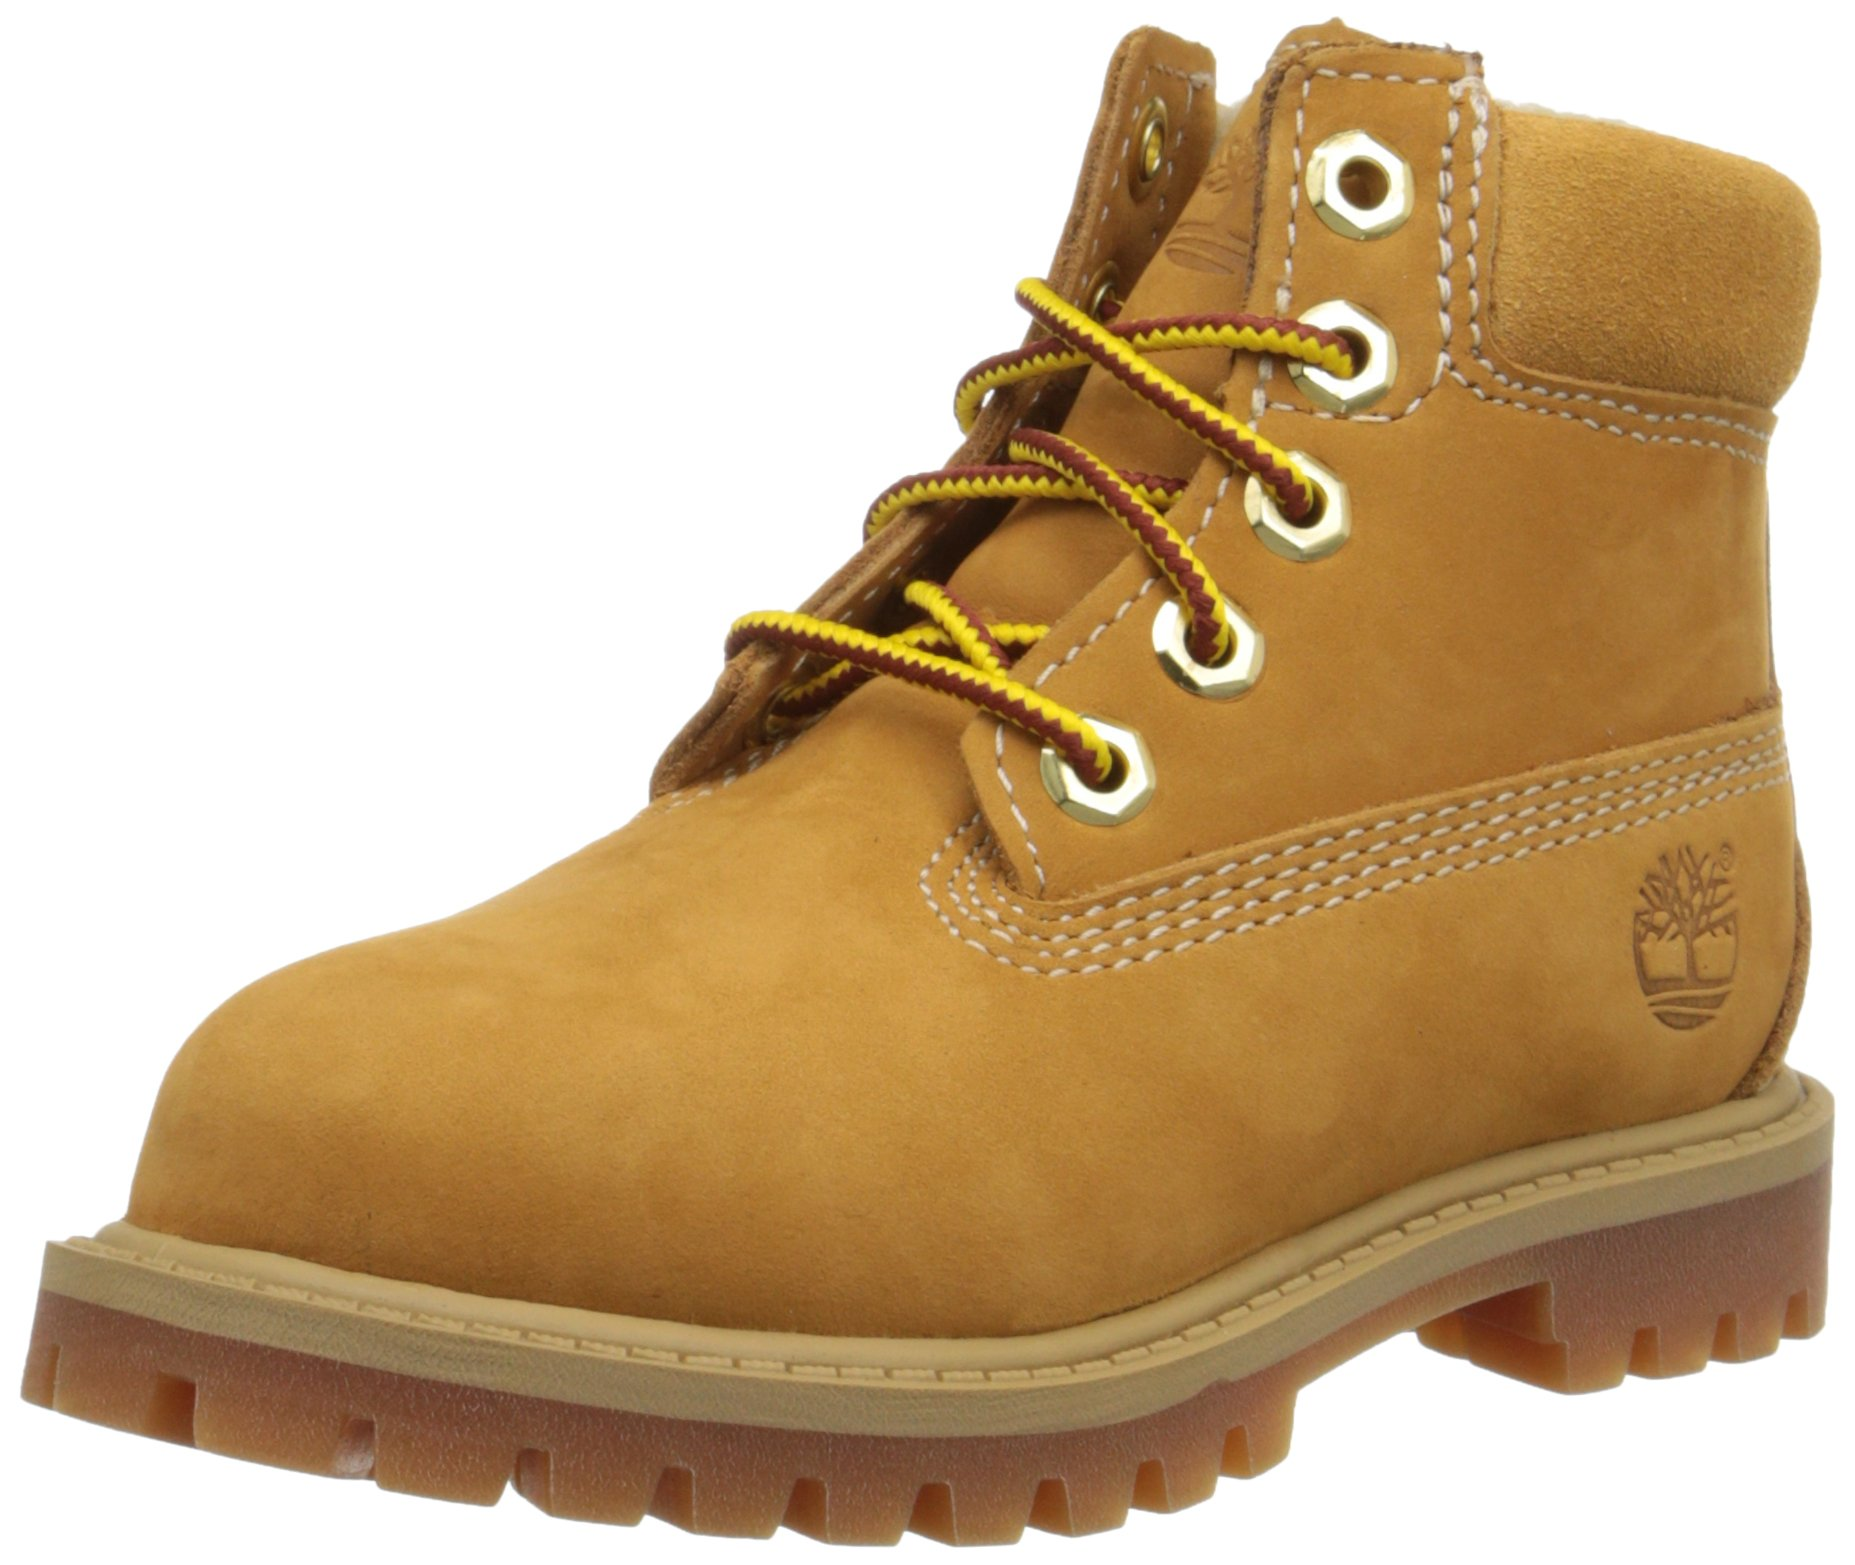 Timberland 6 Inch Premium With Faux Shearling Boot (Toddler/Little Kid/Big Kid), Wheat Nubuck, 4 M US Big Kid by Timberland (Image #1)